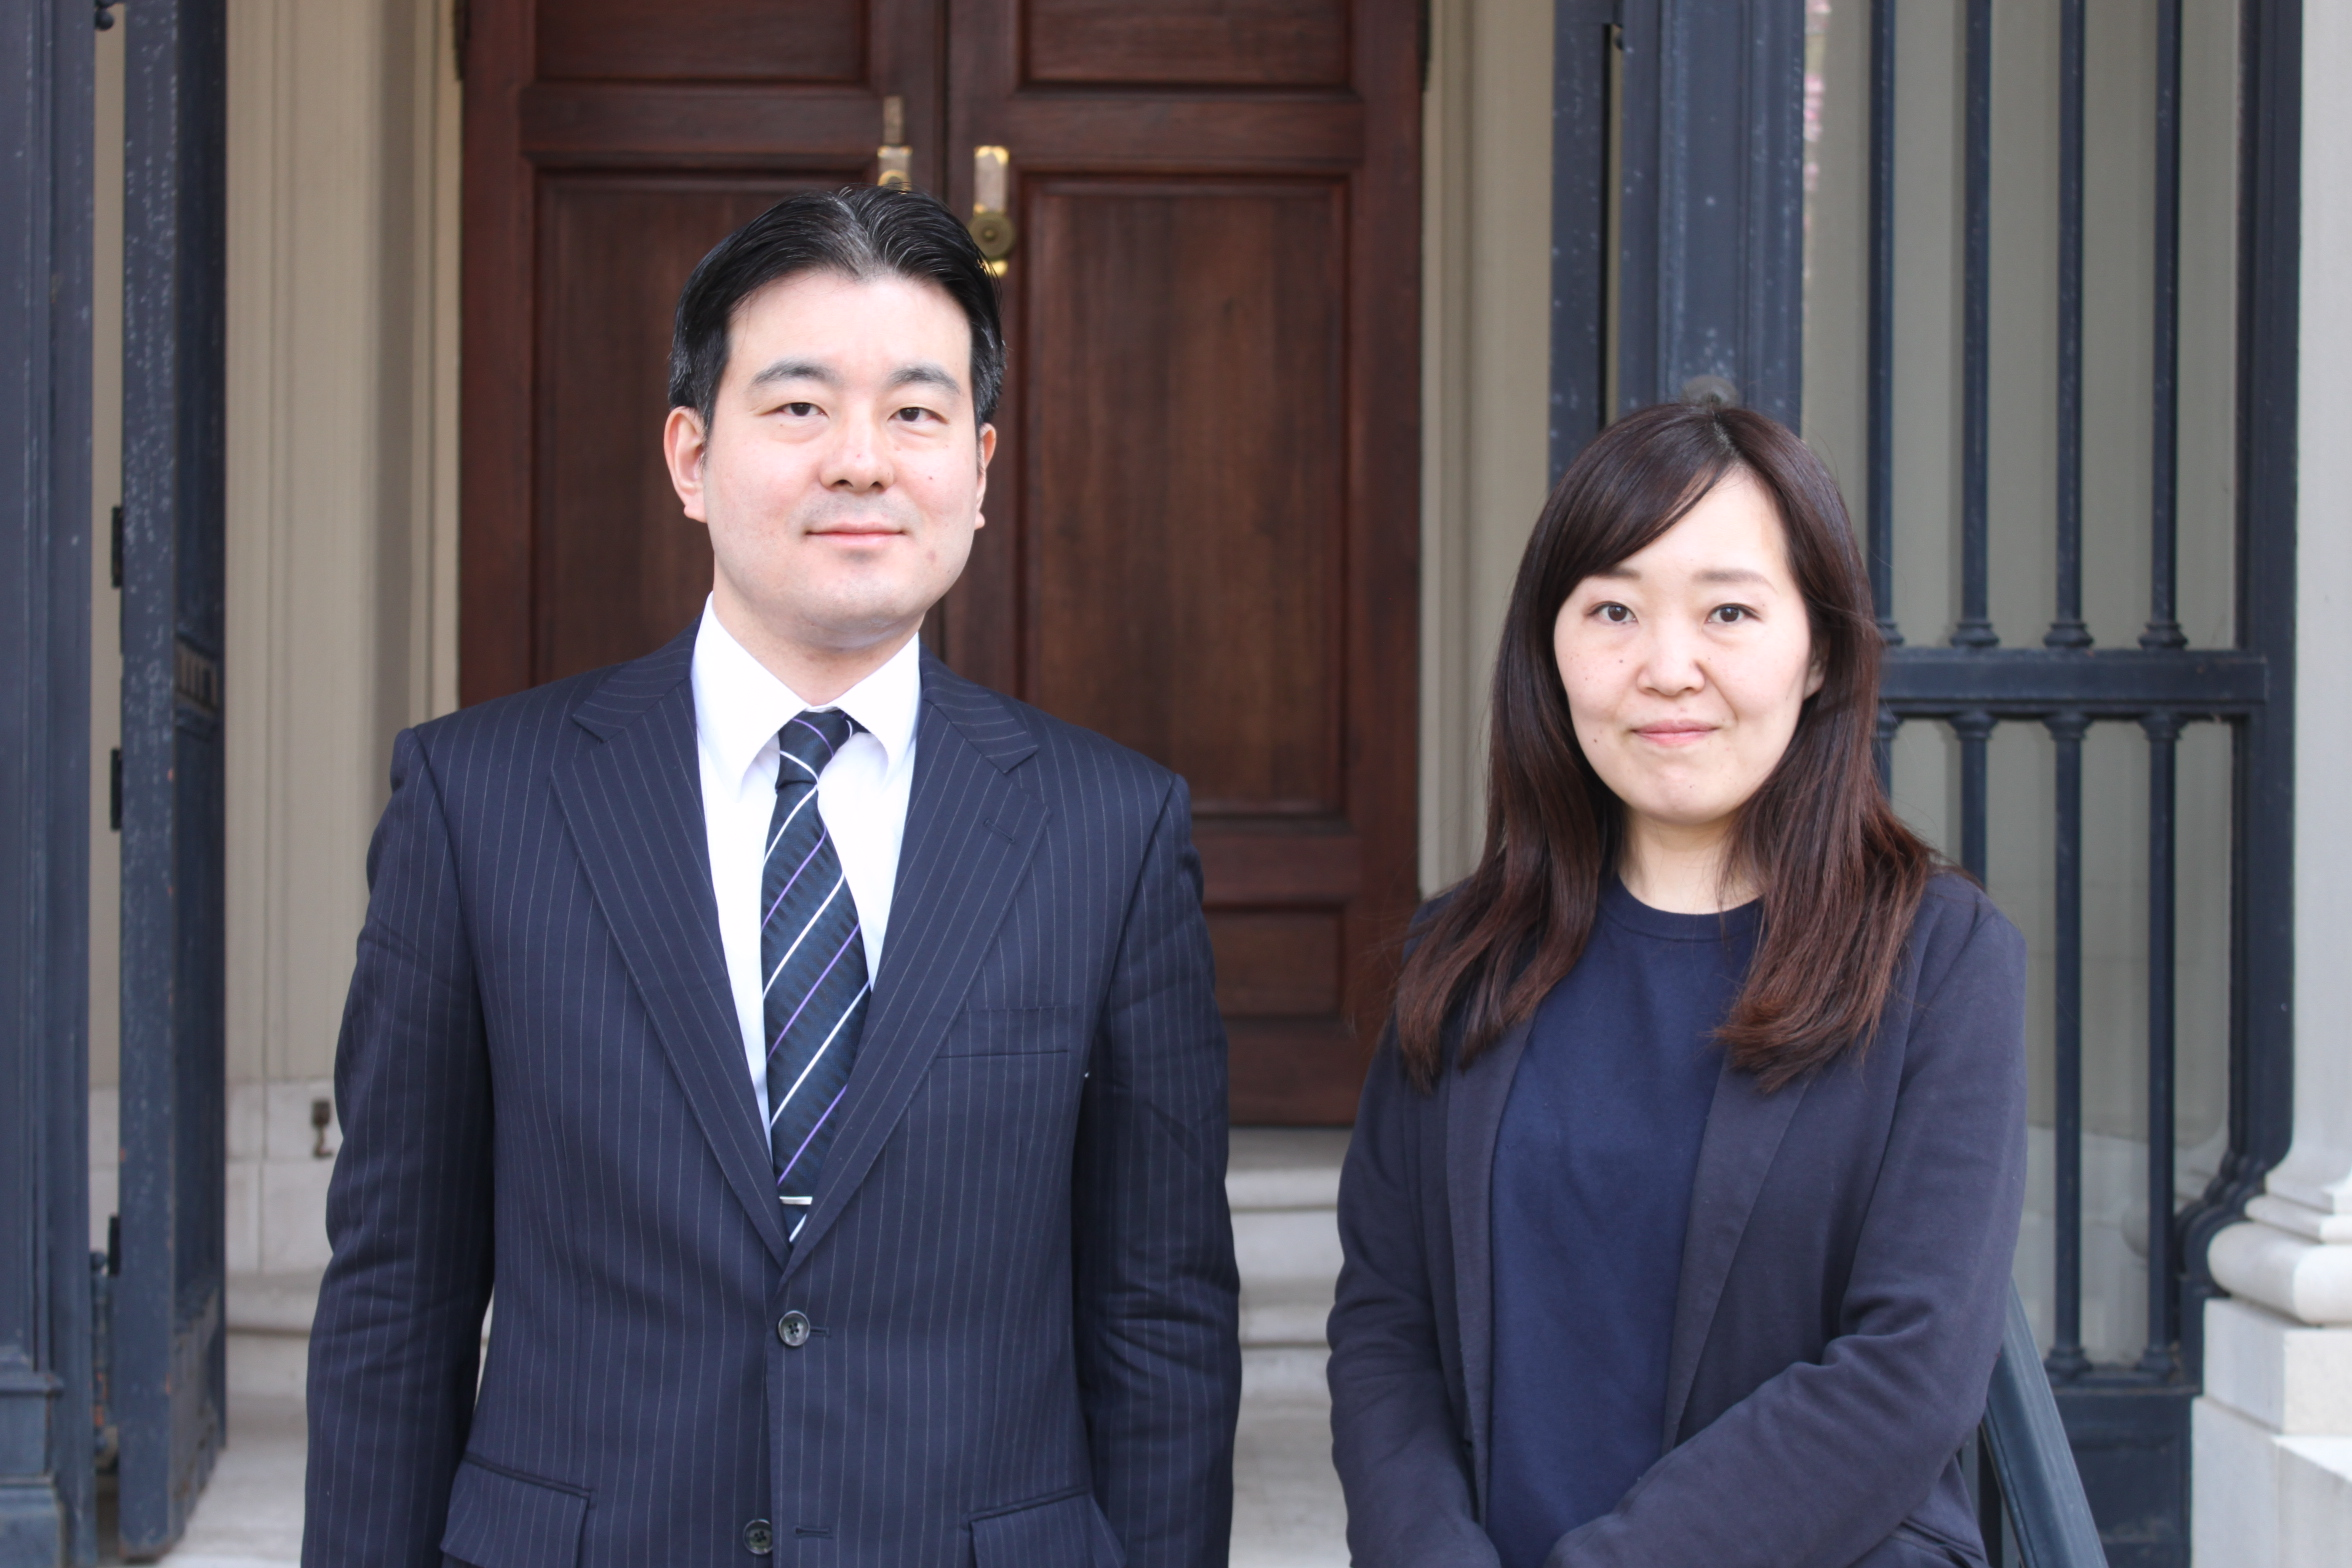 2018 G3P Fellows Mr. Toshihisa Sago and Ms. Yuna Natsumi following their formal program opening.